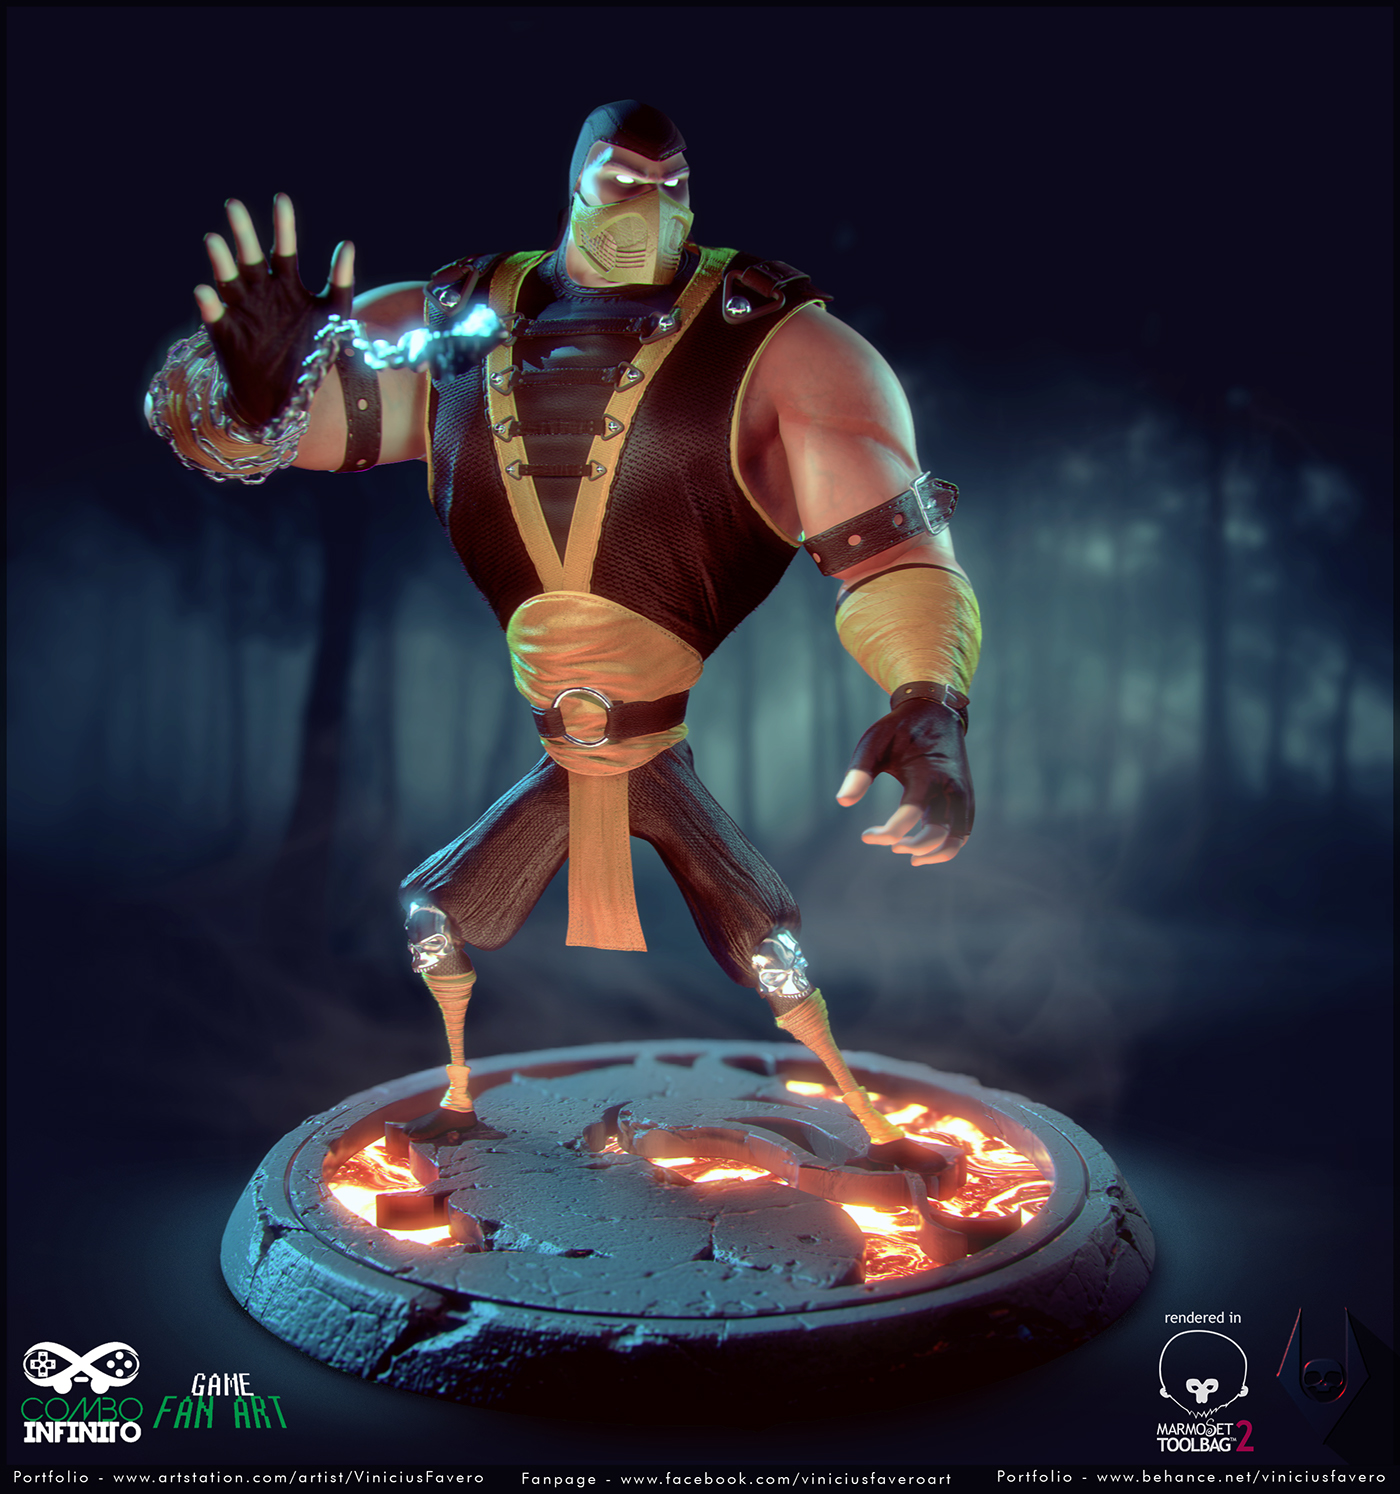 Scorpion Mortal Kombat Animated Series On Behance